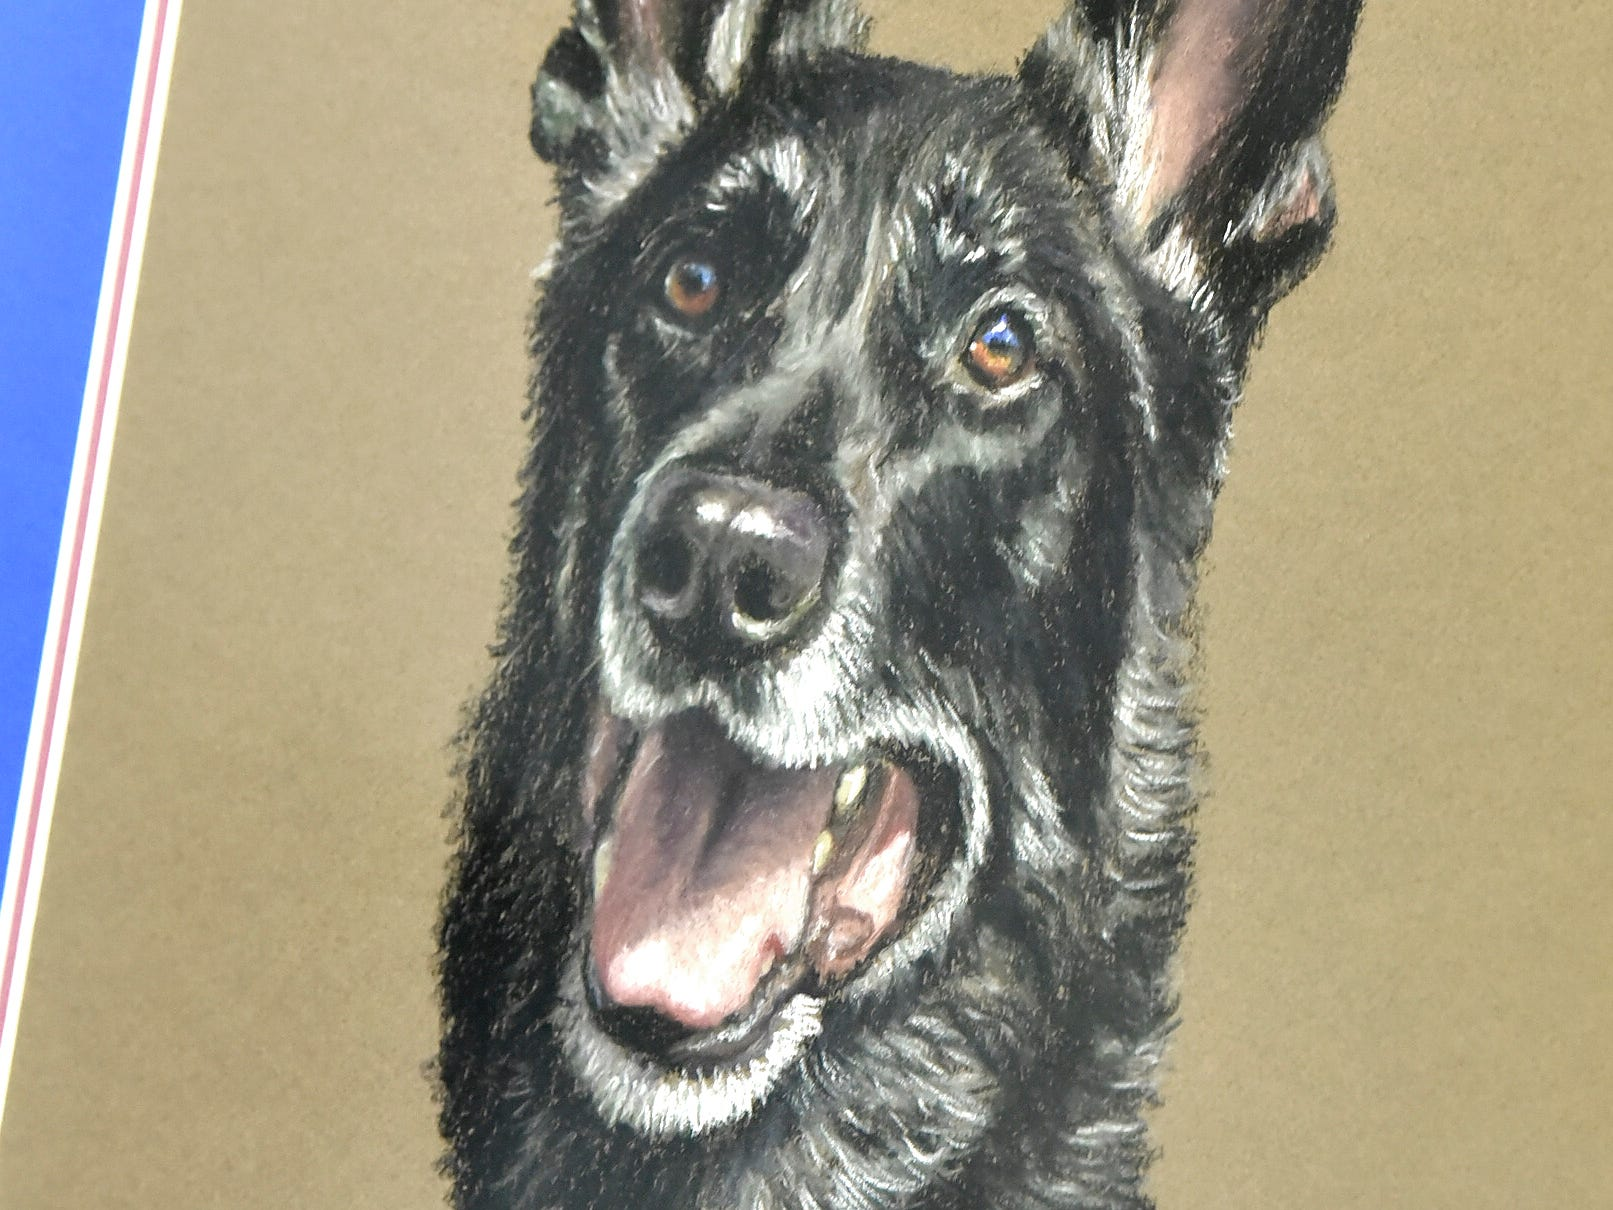 This painting of Chase is a retirement gift for K-9 officer Rich Heins, from the officers in his K-9 training group.